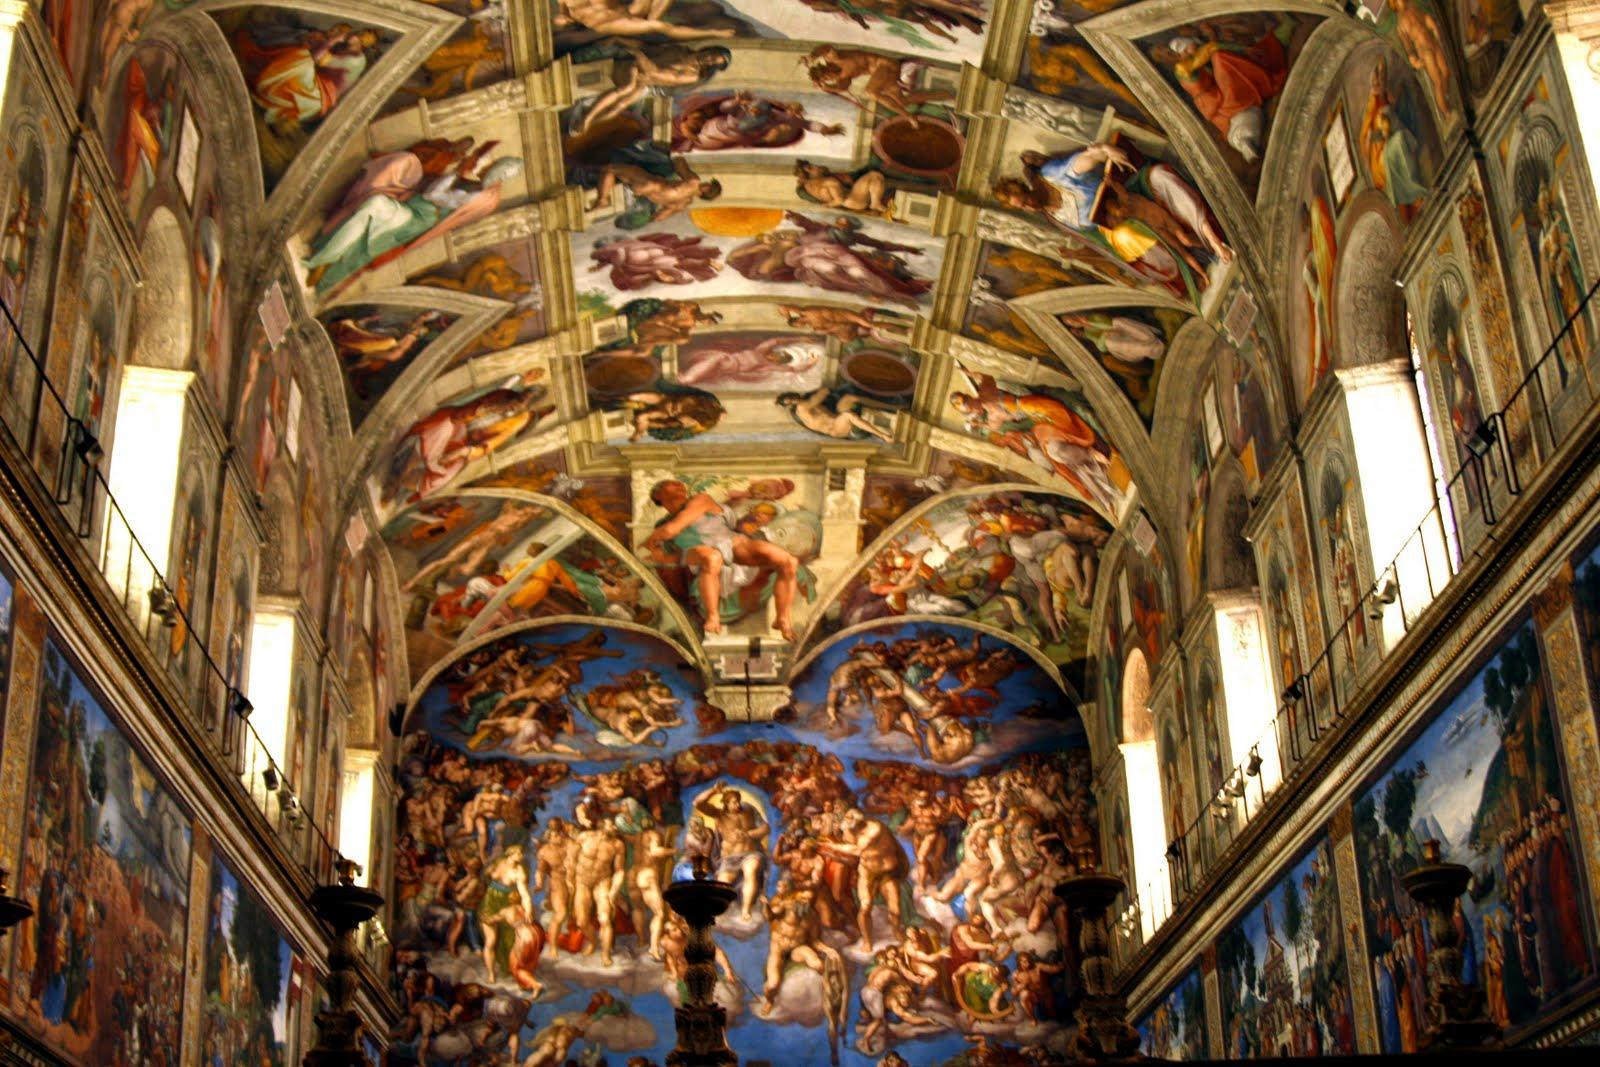 Who painted the famous mural on the Sistine Chapel ceiling?